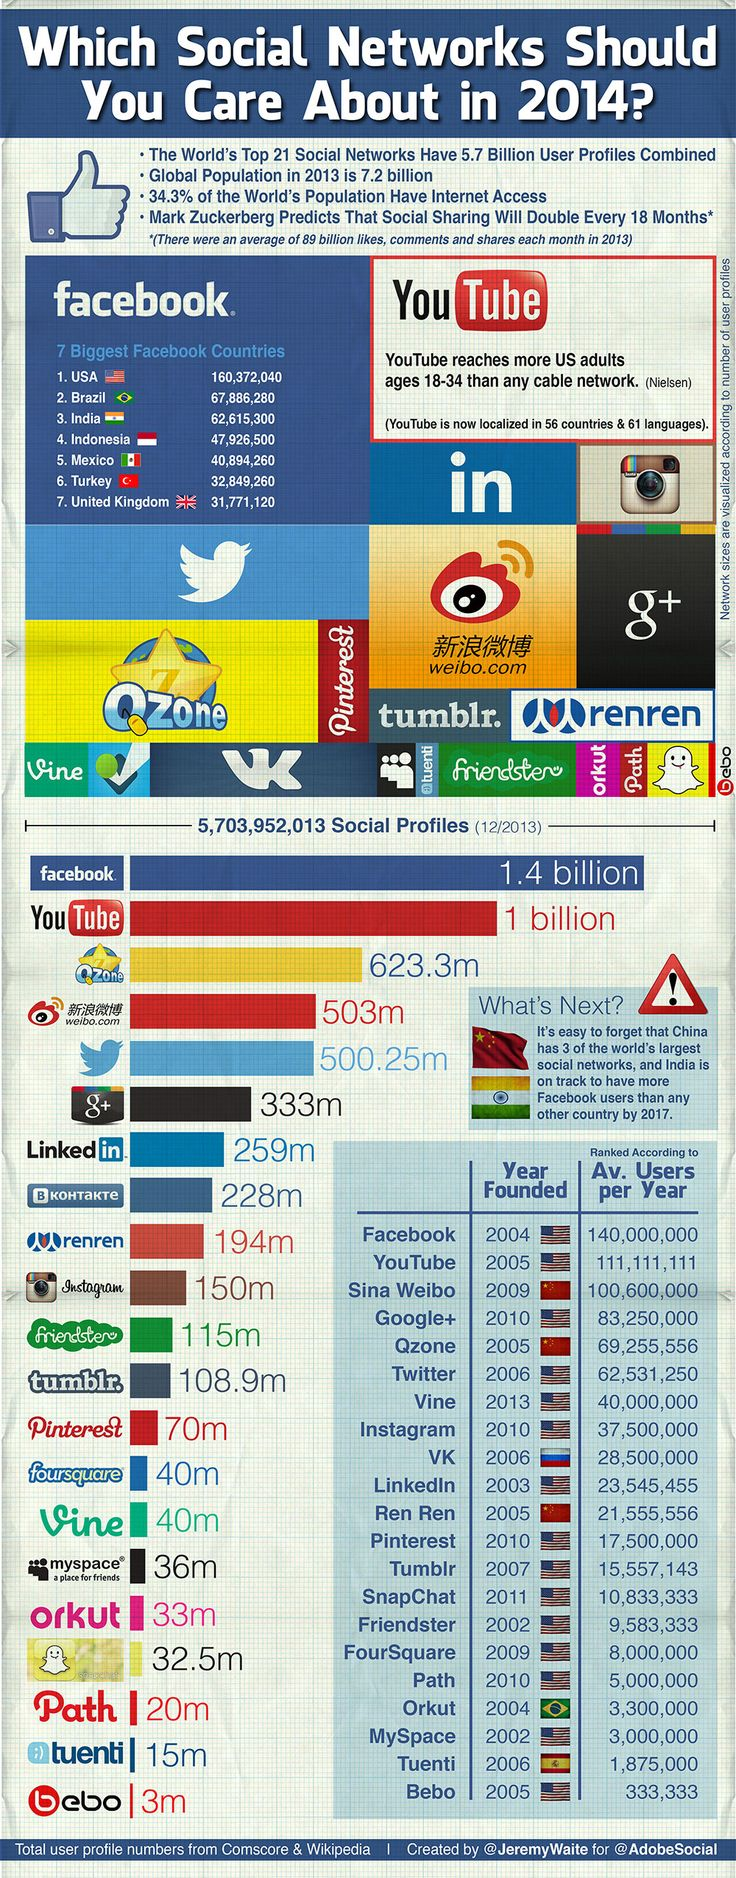 #Infographic: Which Social Networks Should You Care About in 2014